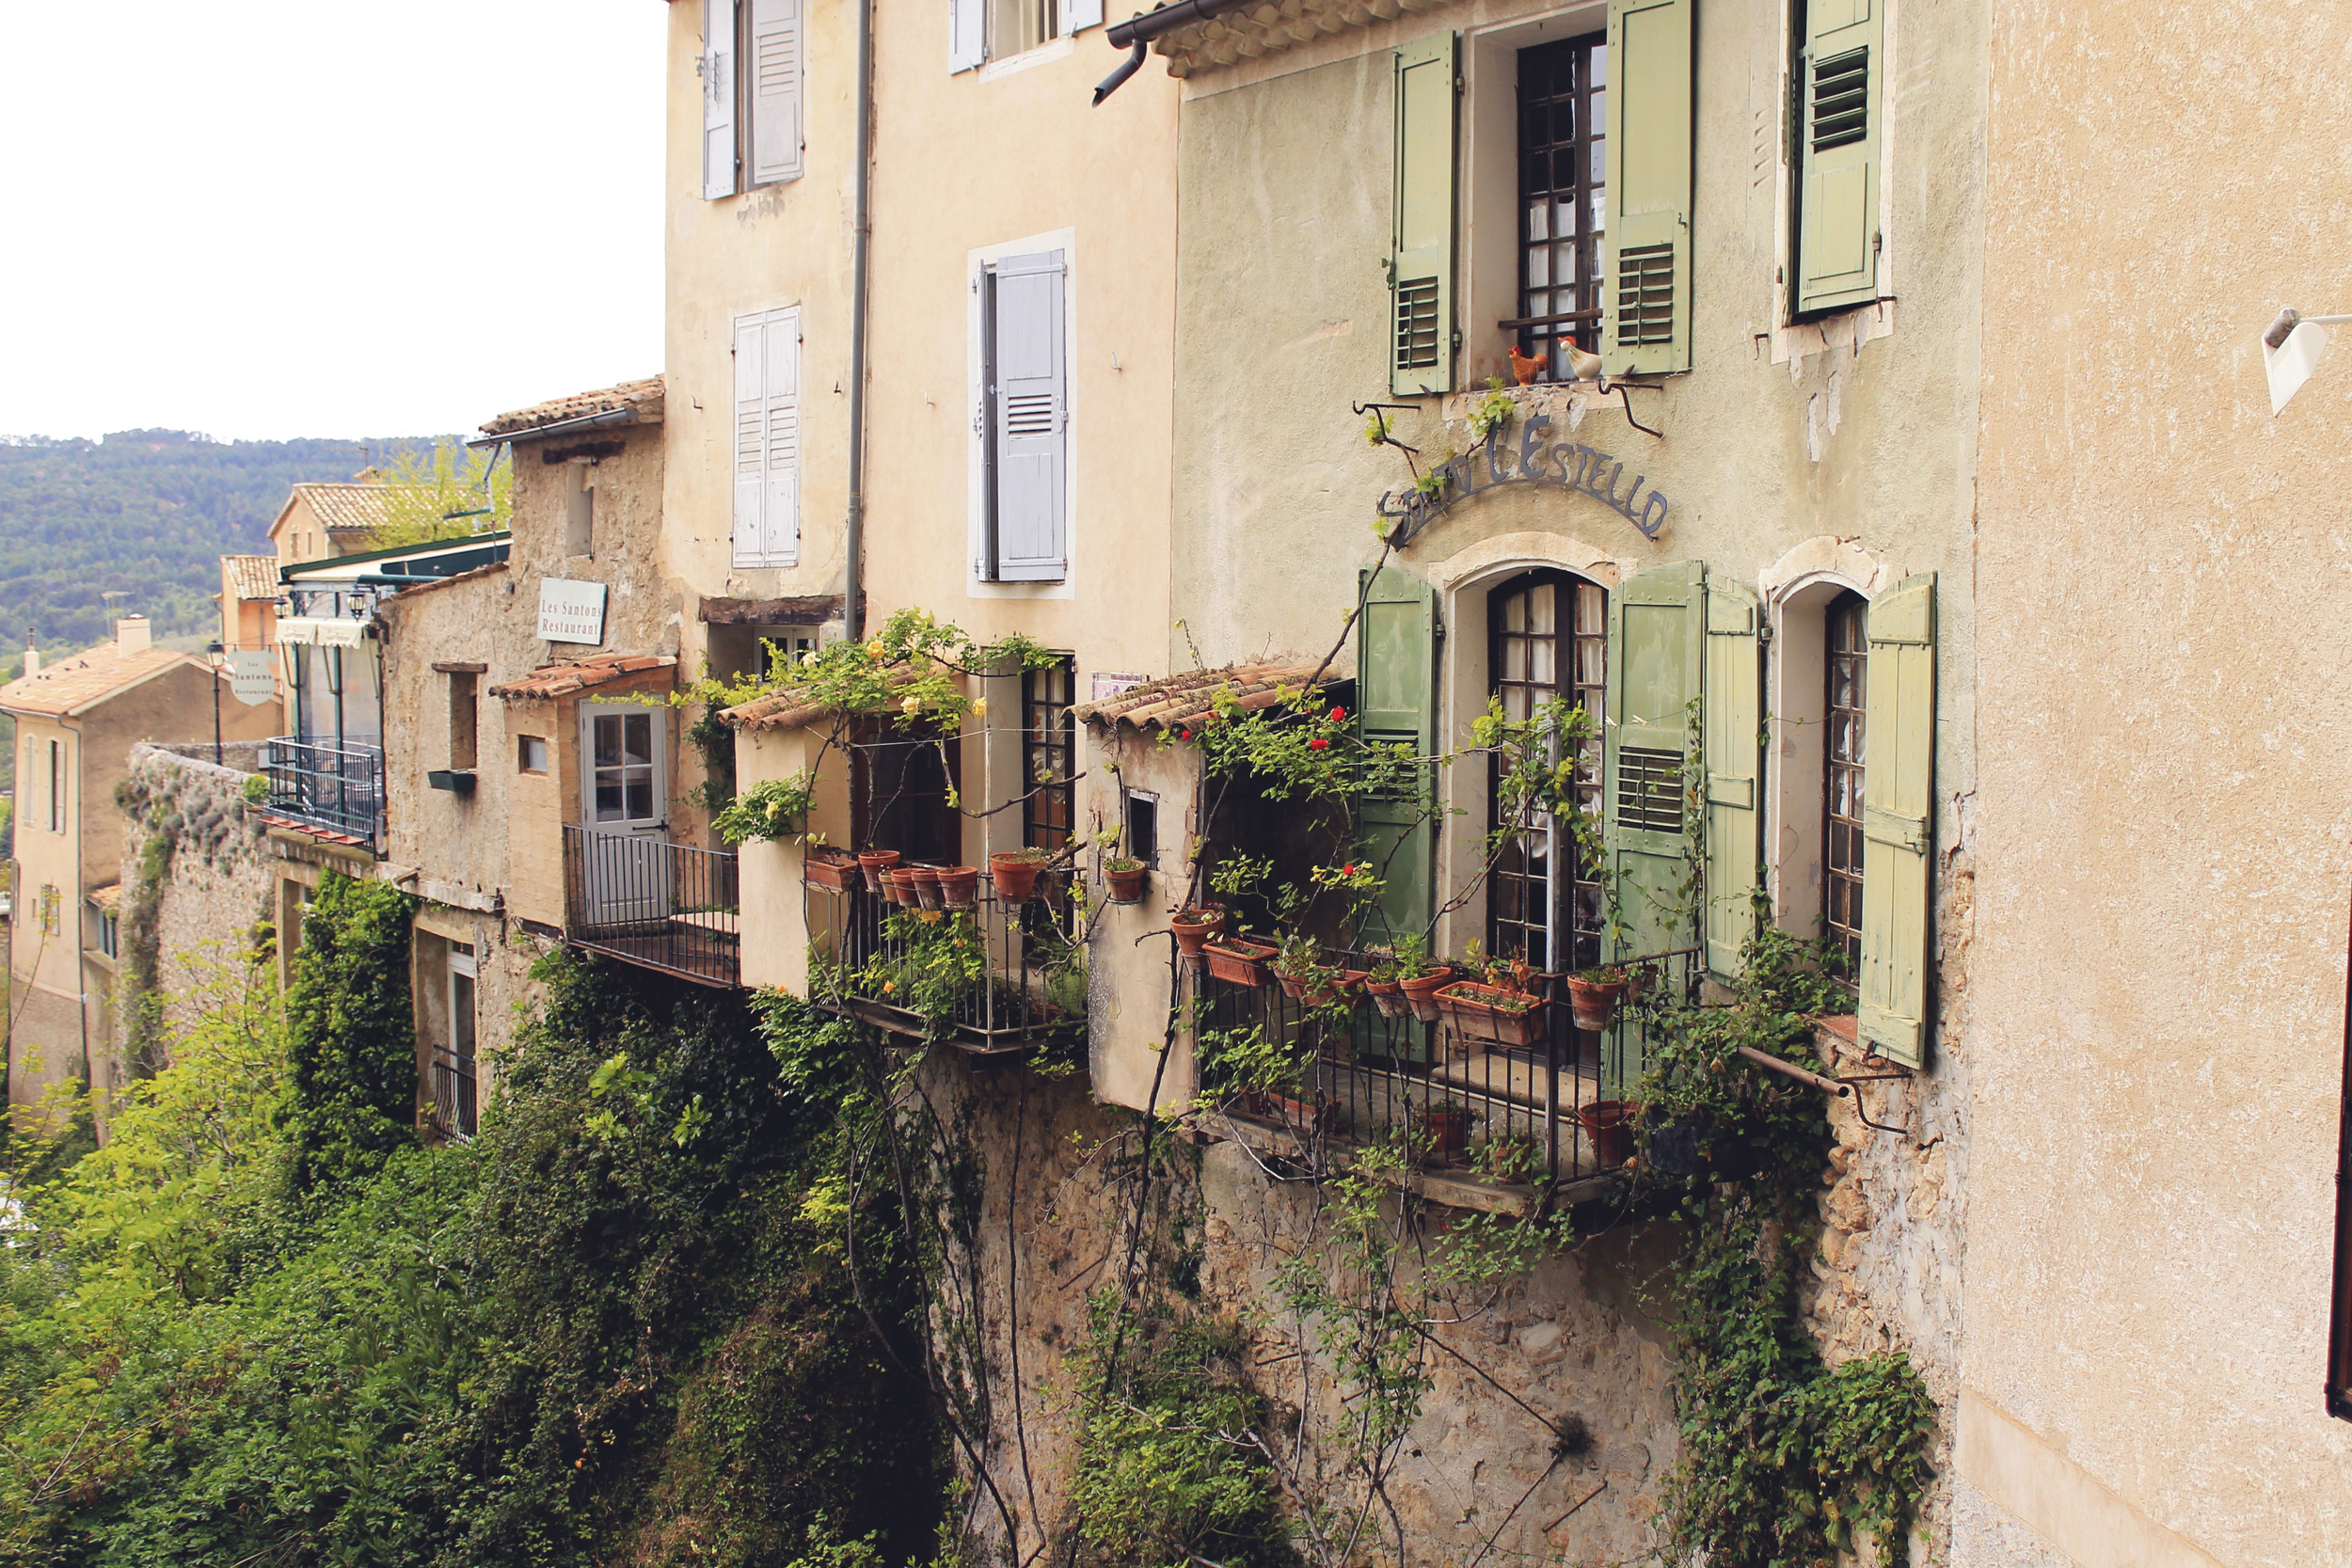 france hillside south cote d'azur town windowbox flowers